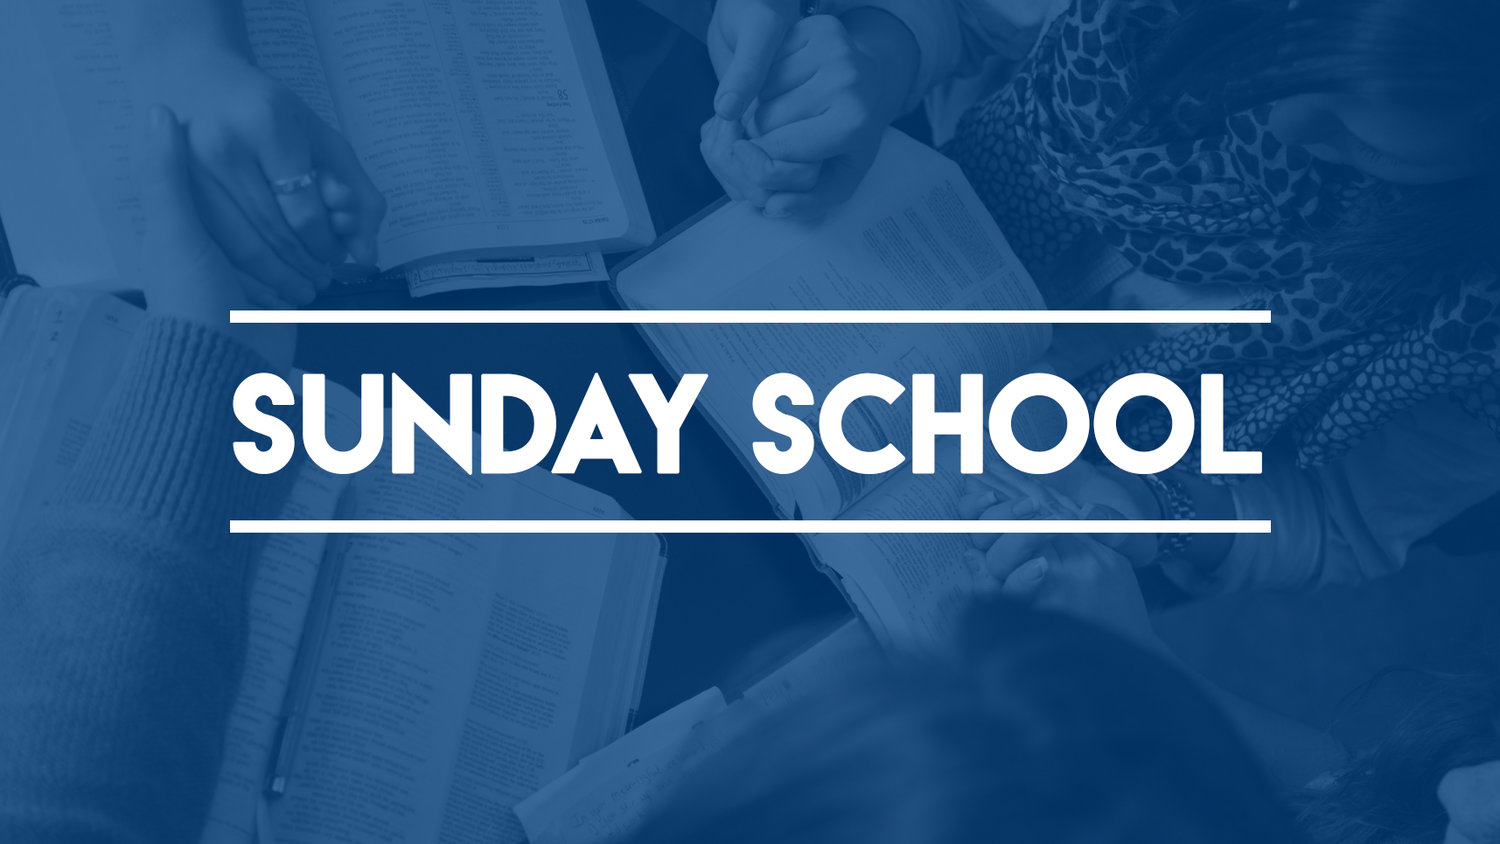 Sunday School image